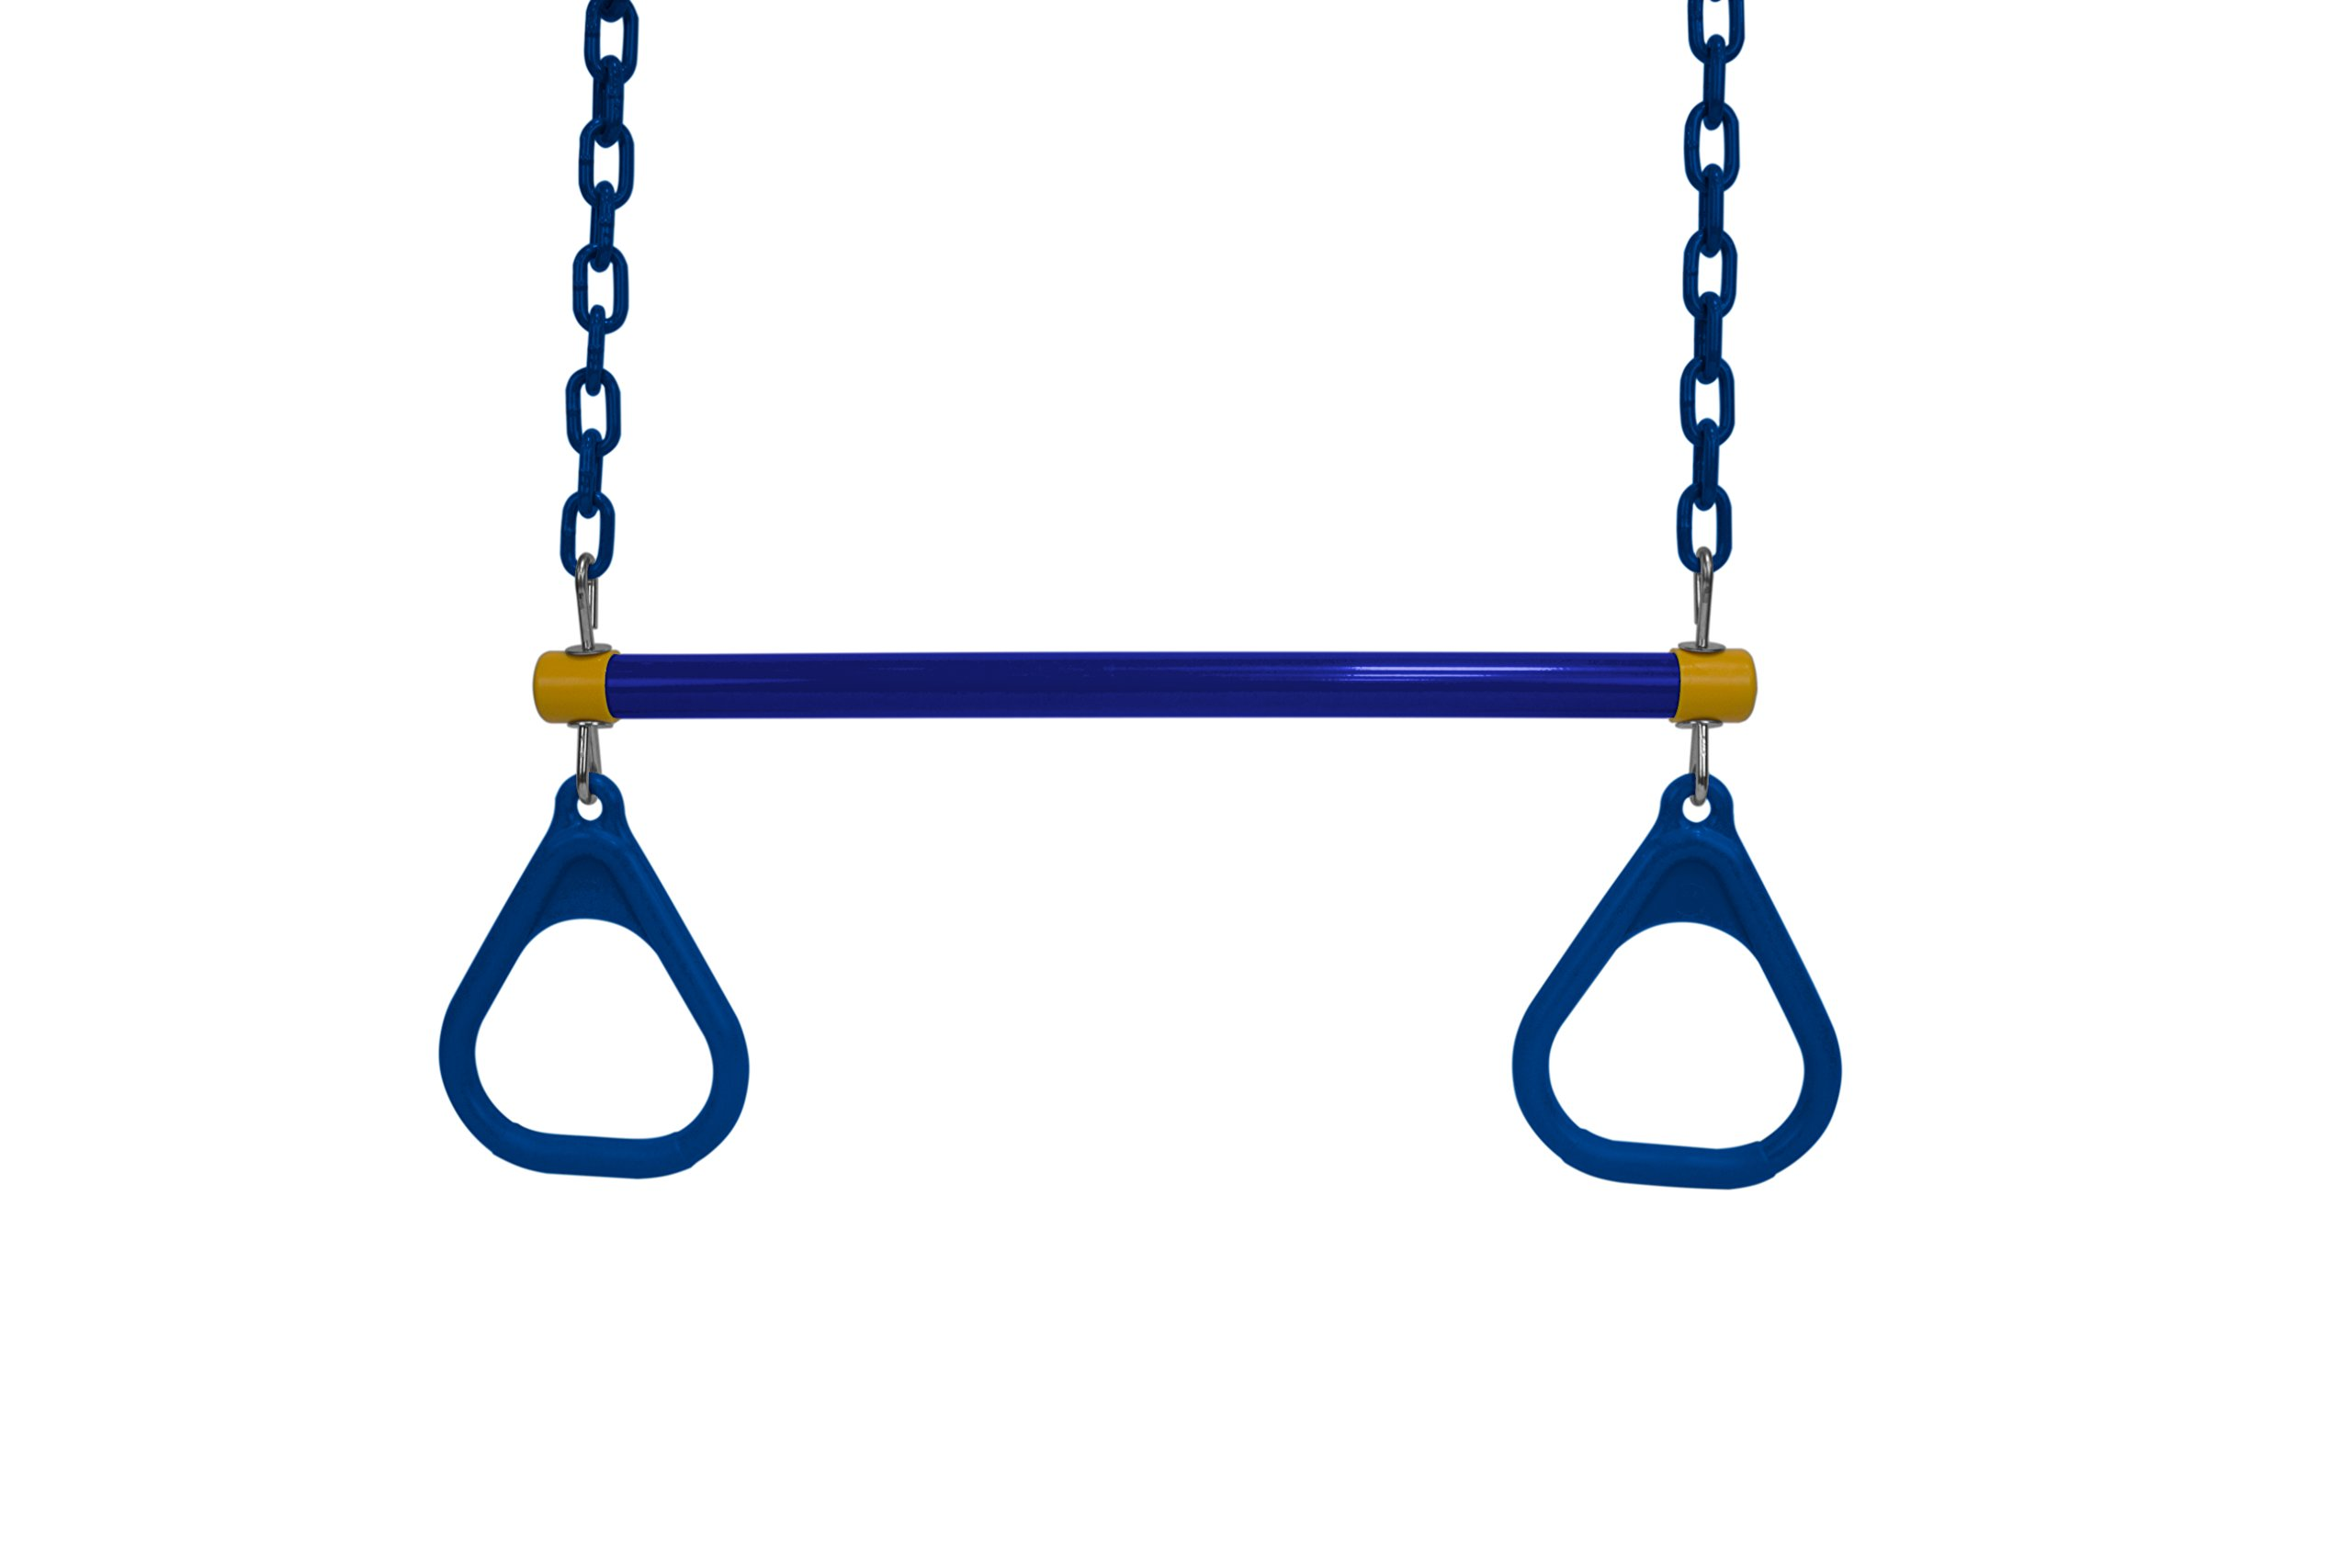 American Swing Blue Trapeze Bar with Blue Rings - Trapeze Bar Combo - Residential Only by American Swing Products